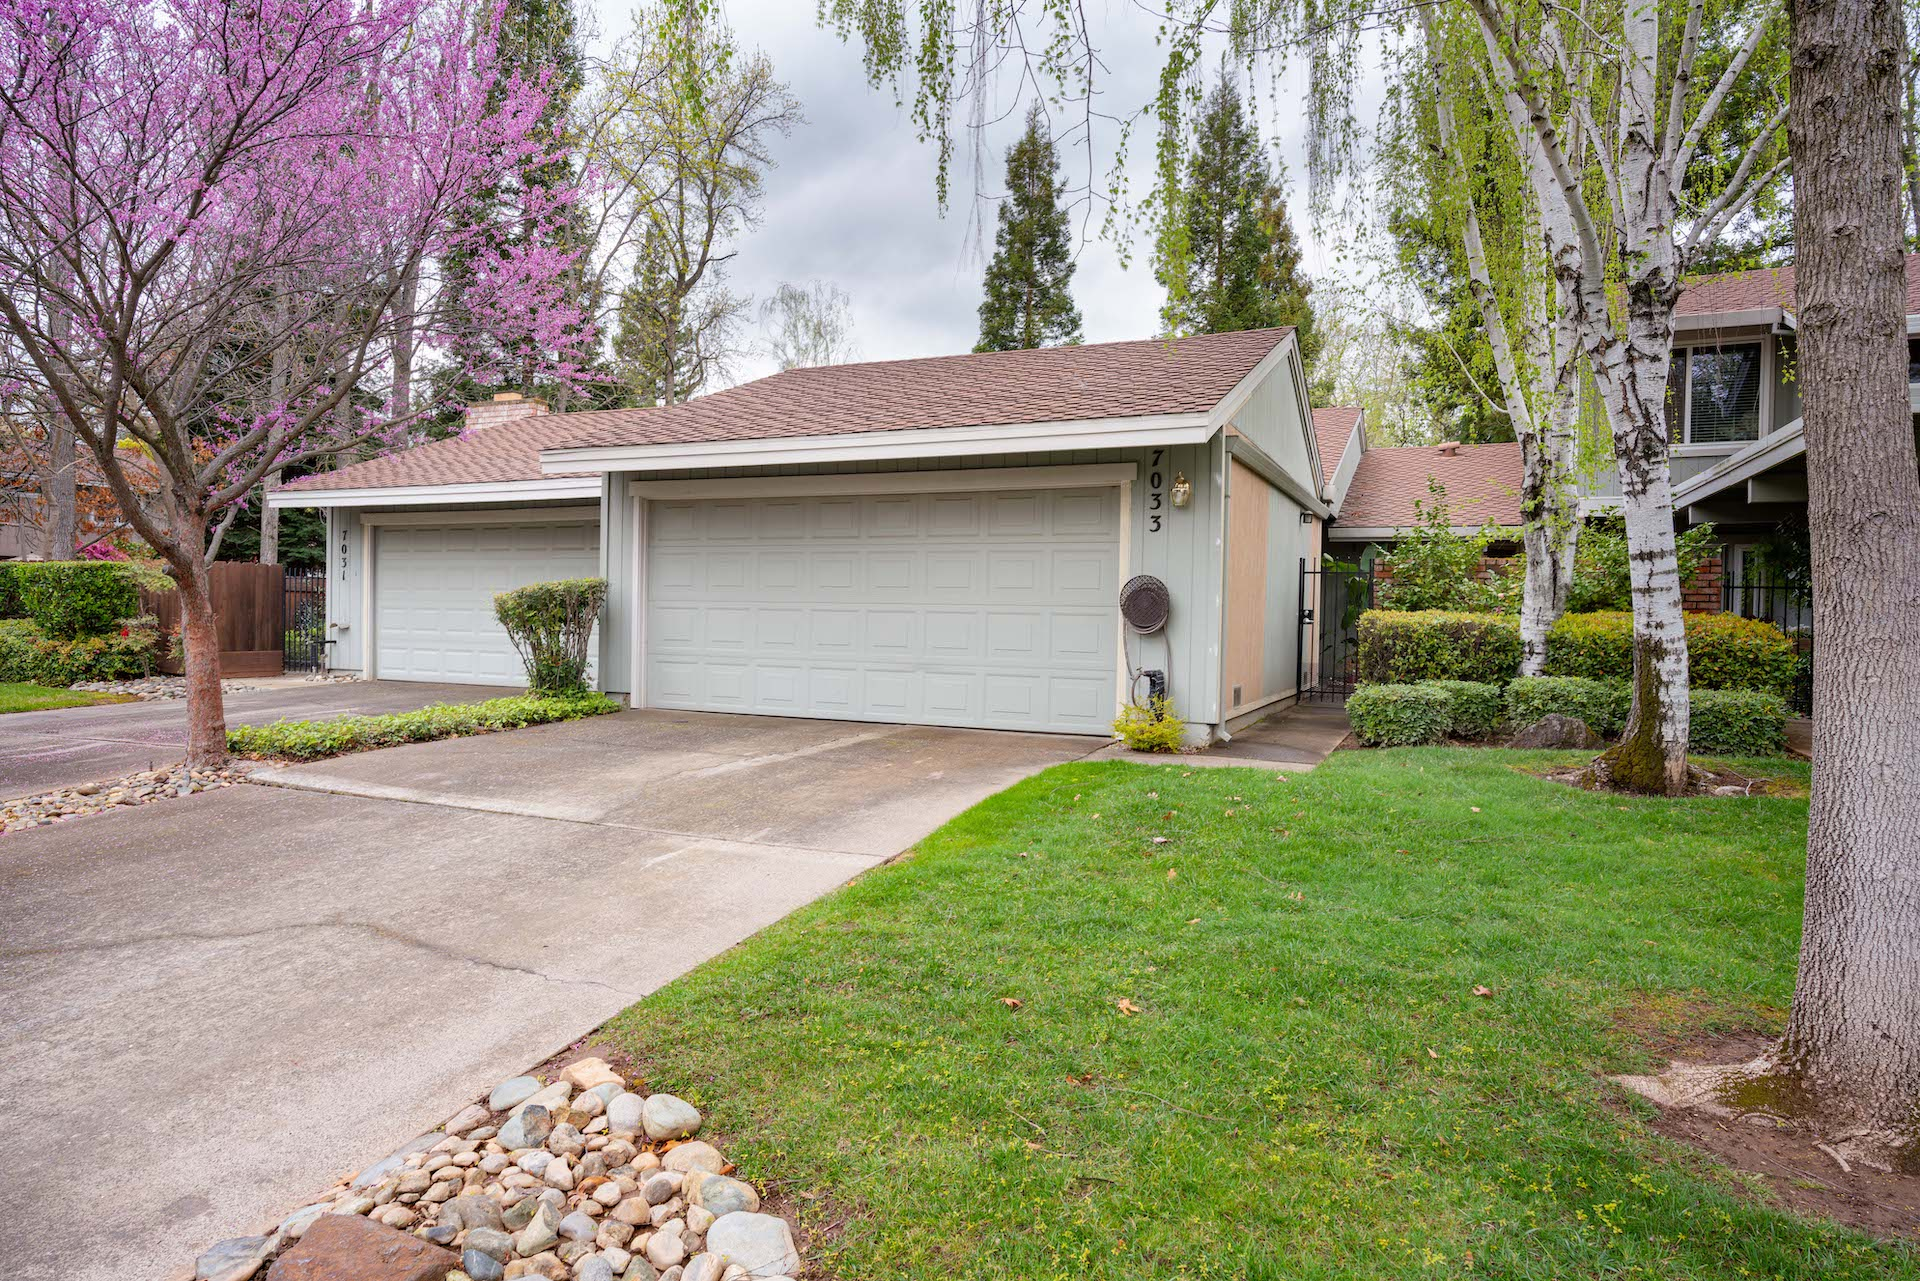 7033 La Costa Ln, Citrus Heights, Ca | Front | Realtor In Citrus Heights